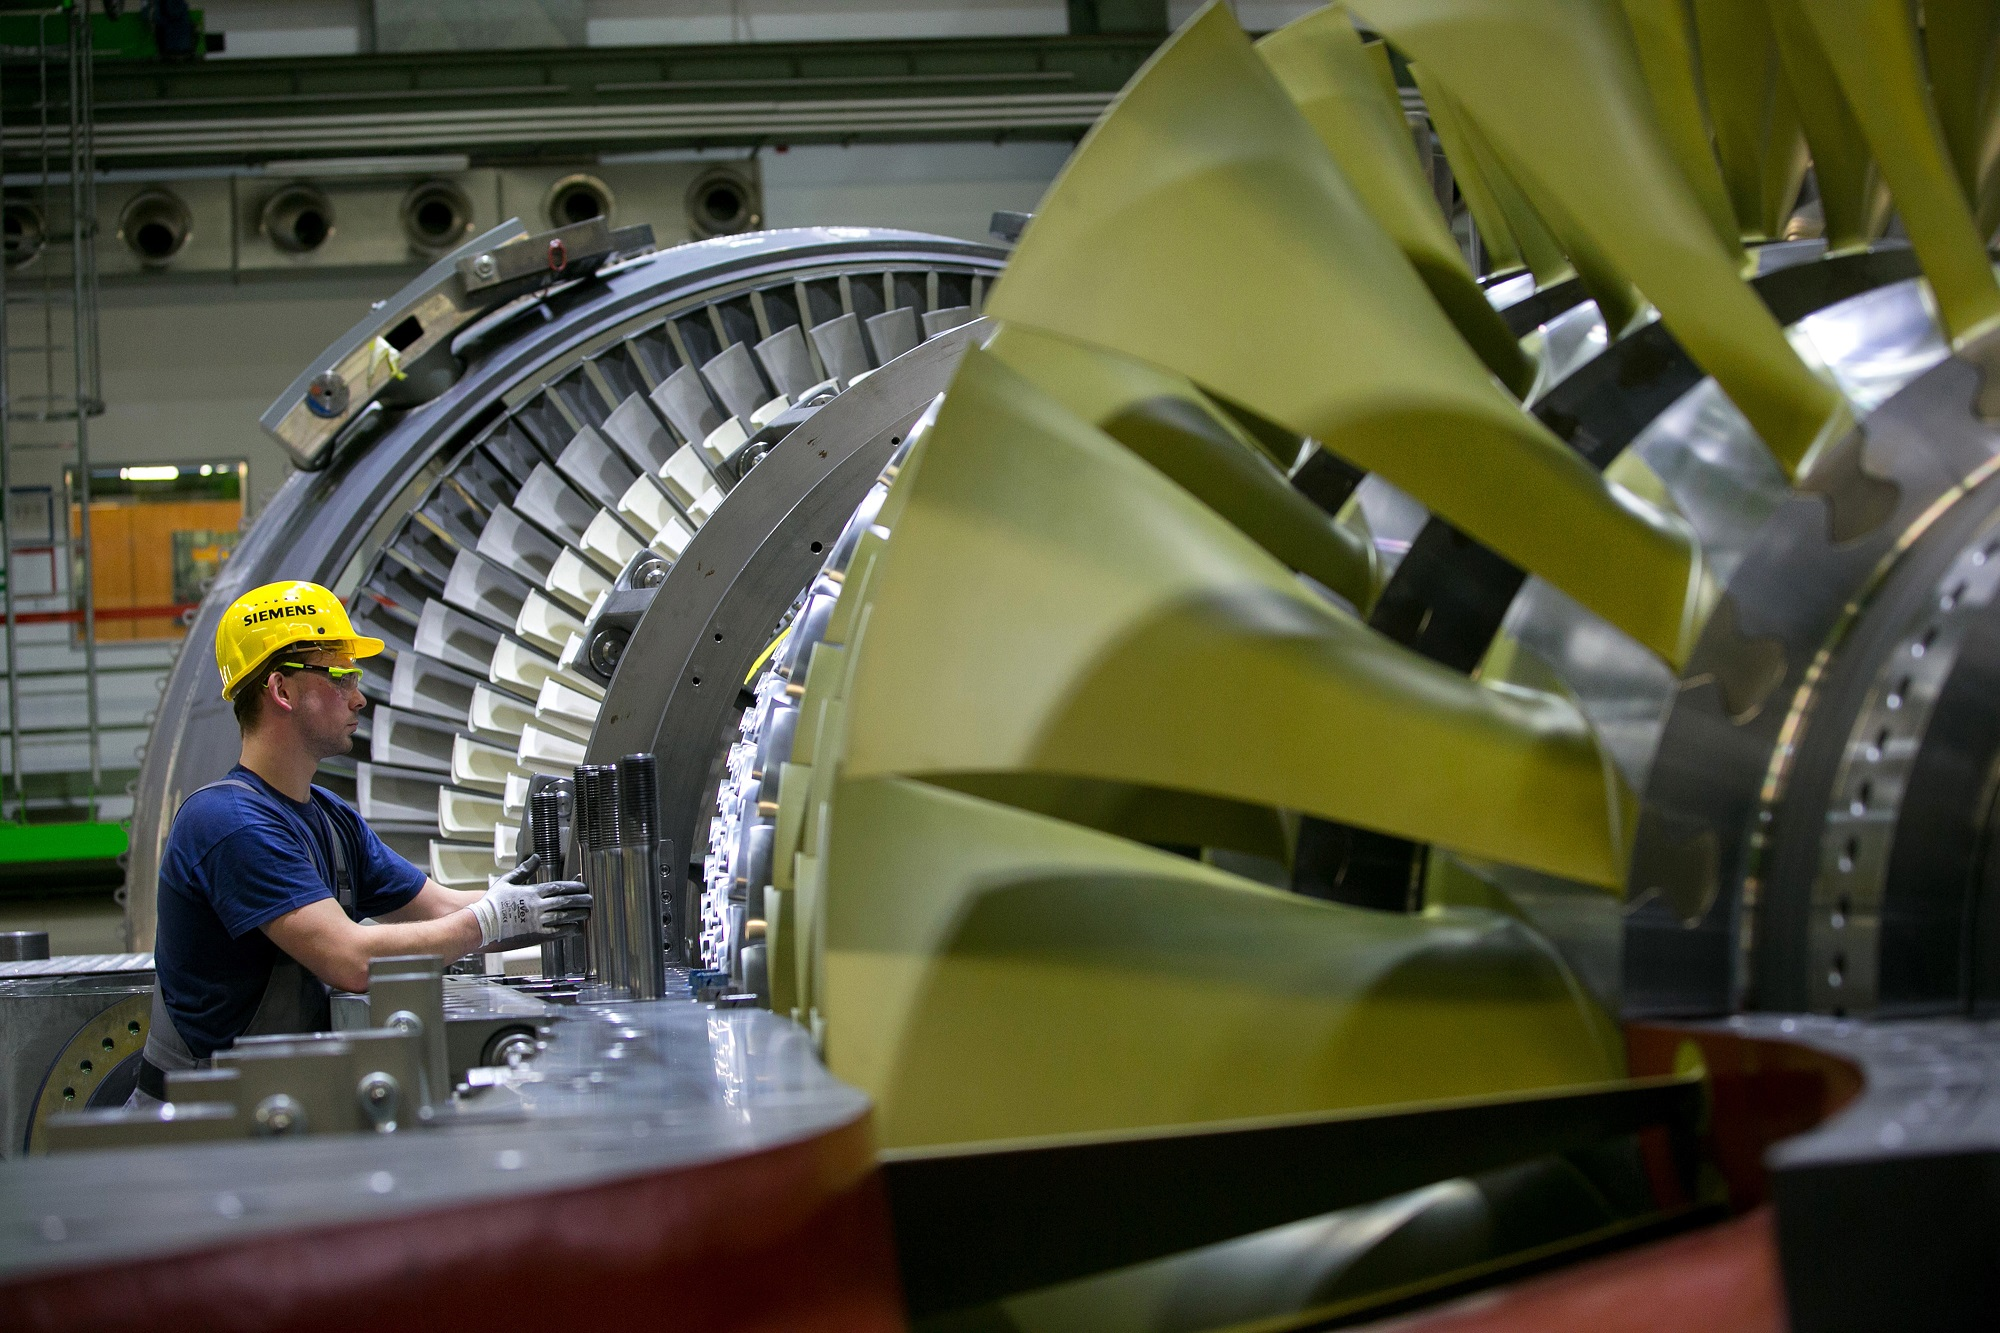 Siemens Plans Thousands of Job Cuts Over Two Divisions